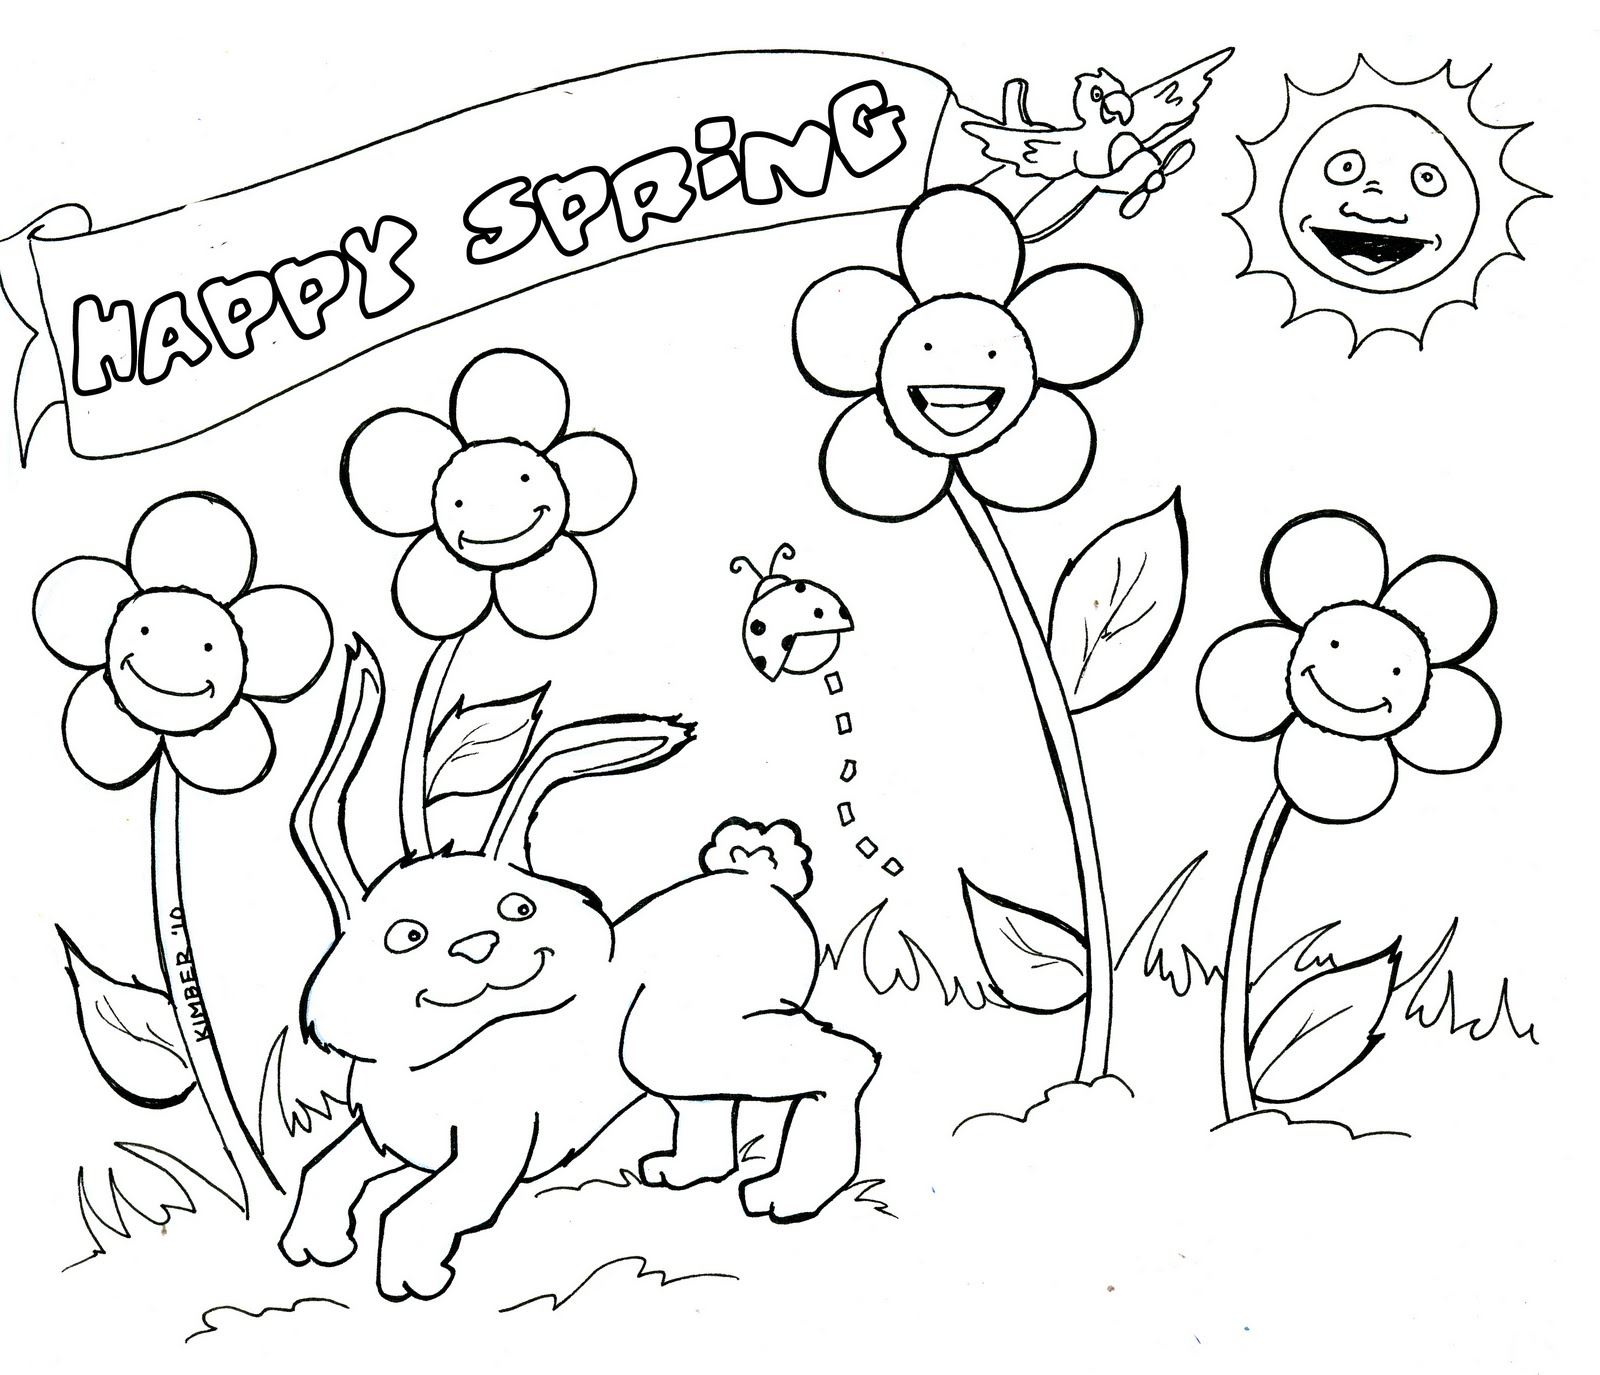 april coloring pages to download and print for free - May Coloring Pages